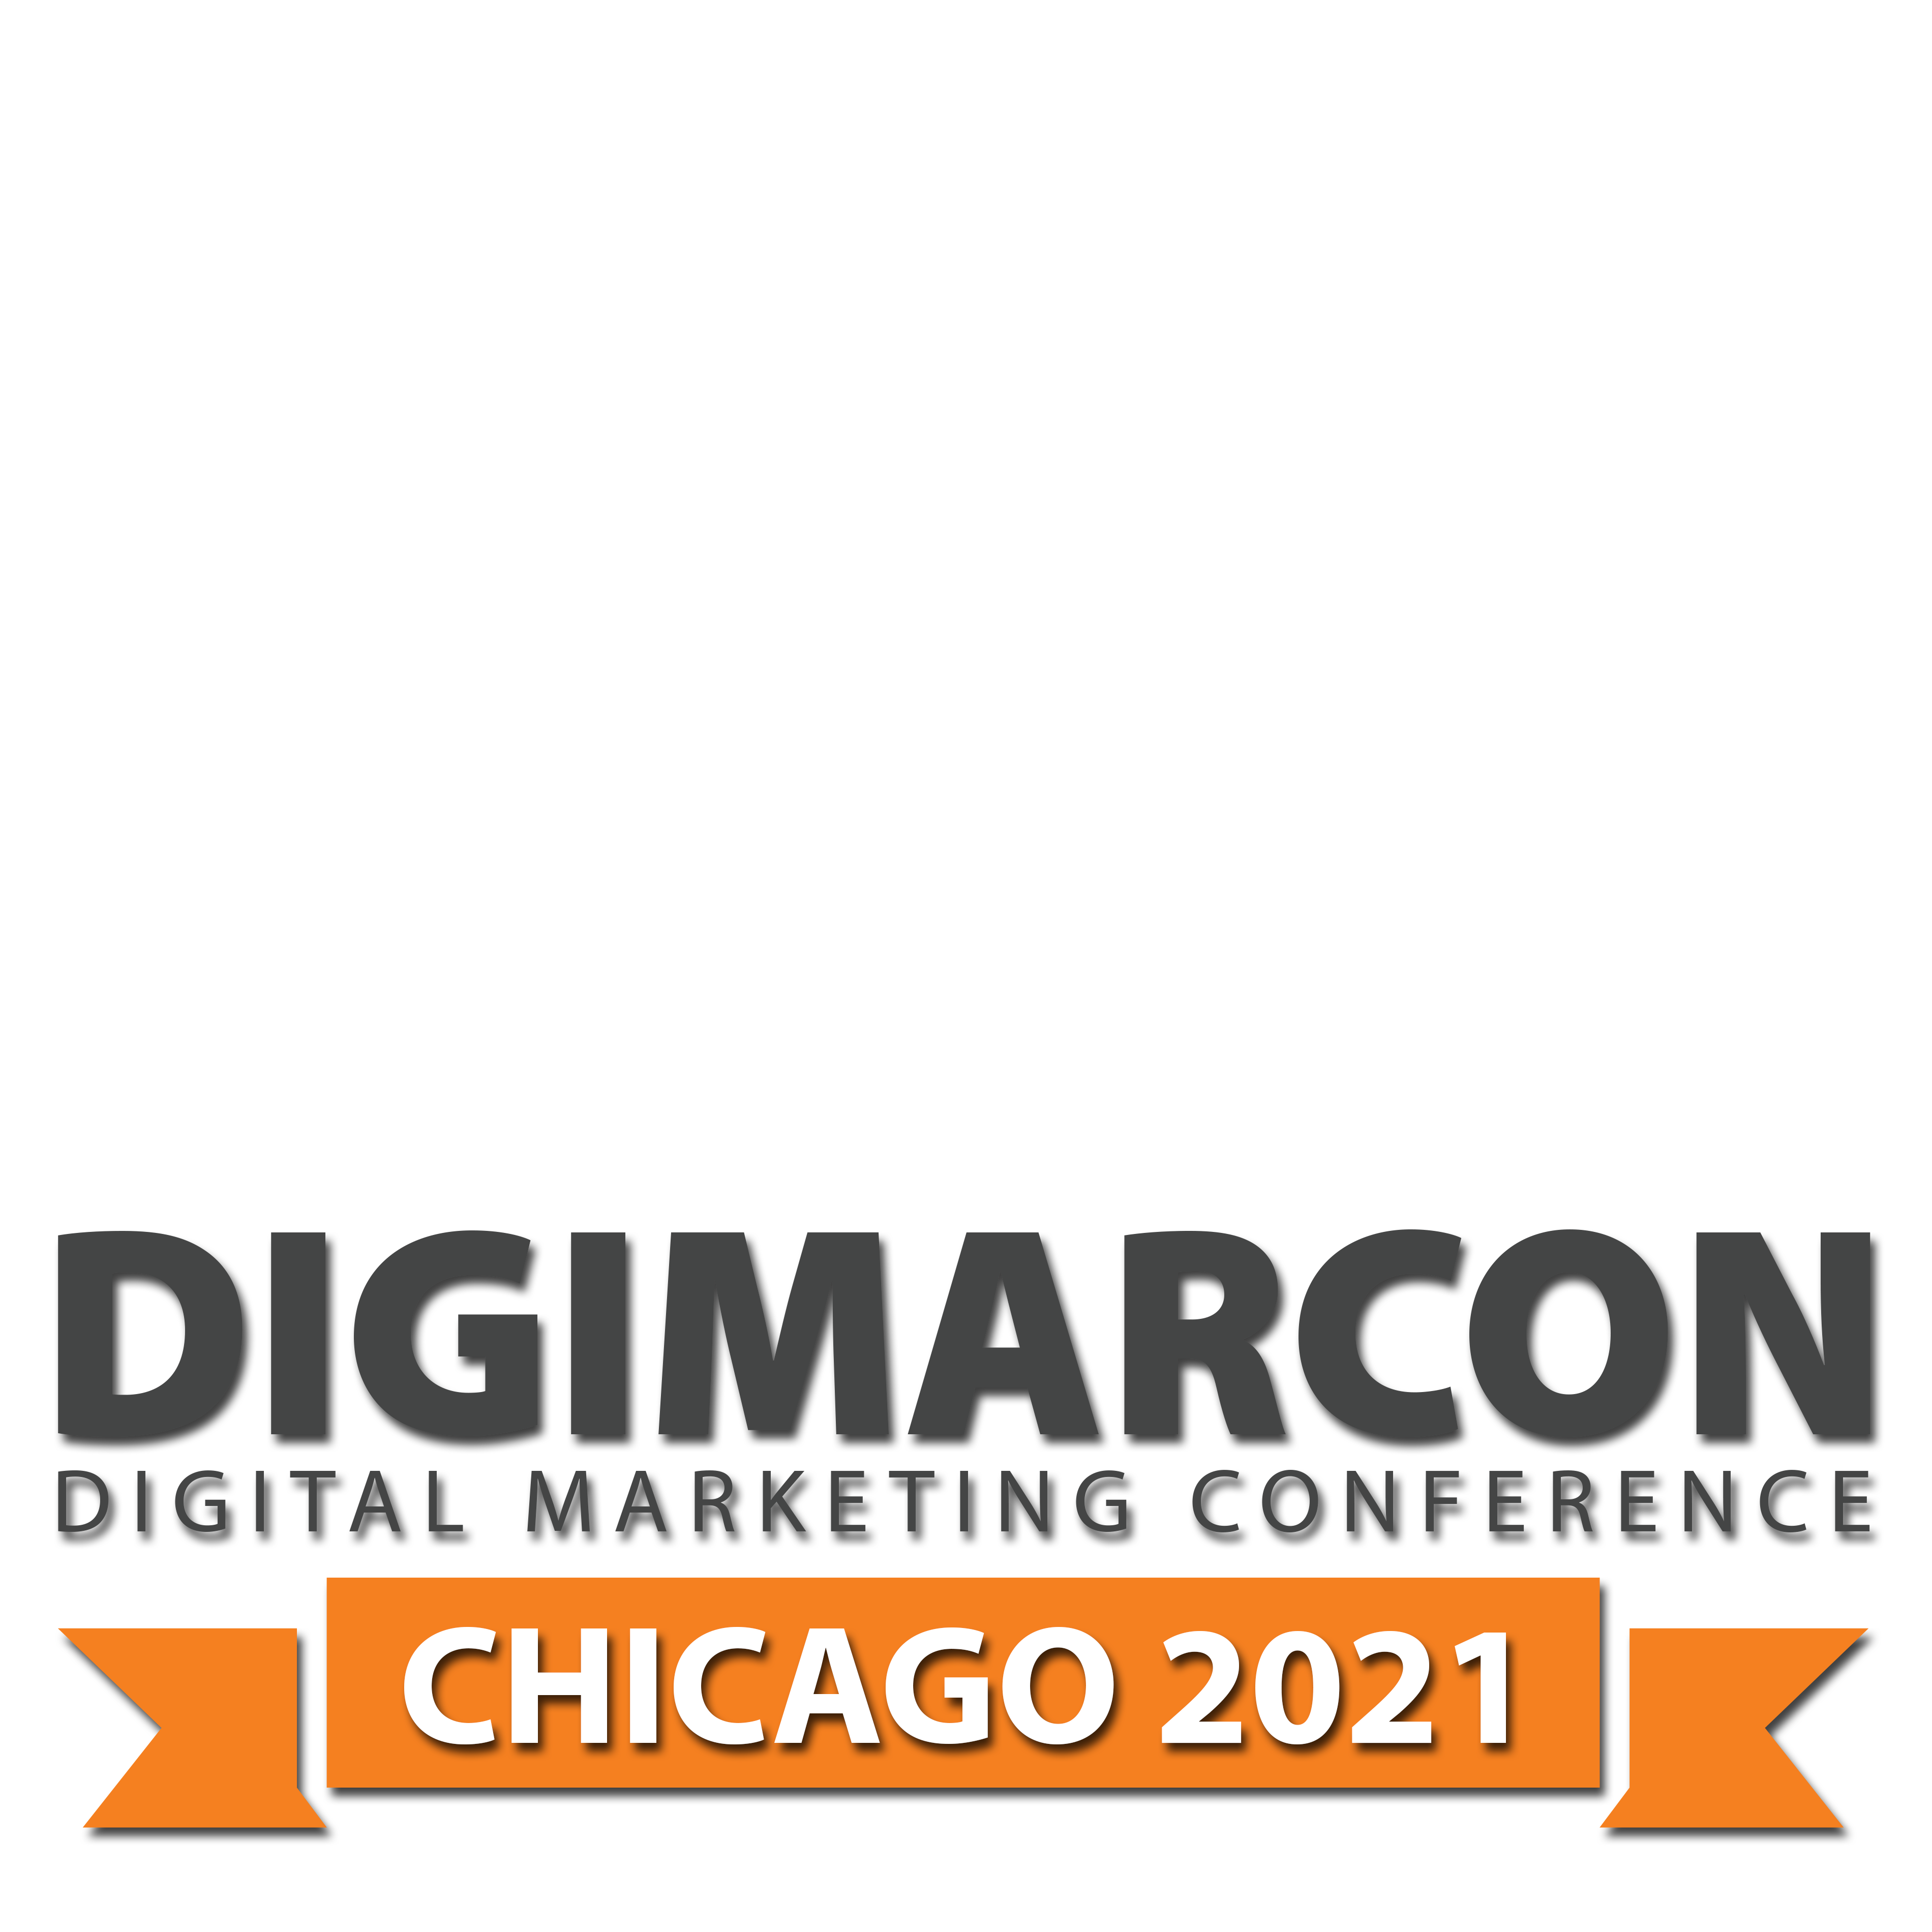 DigiMarCon Chicago 2021 – Digital Marketing Conference & Exhibition